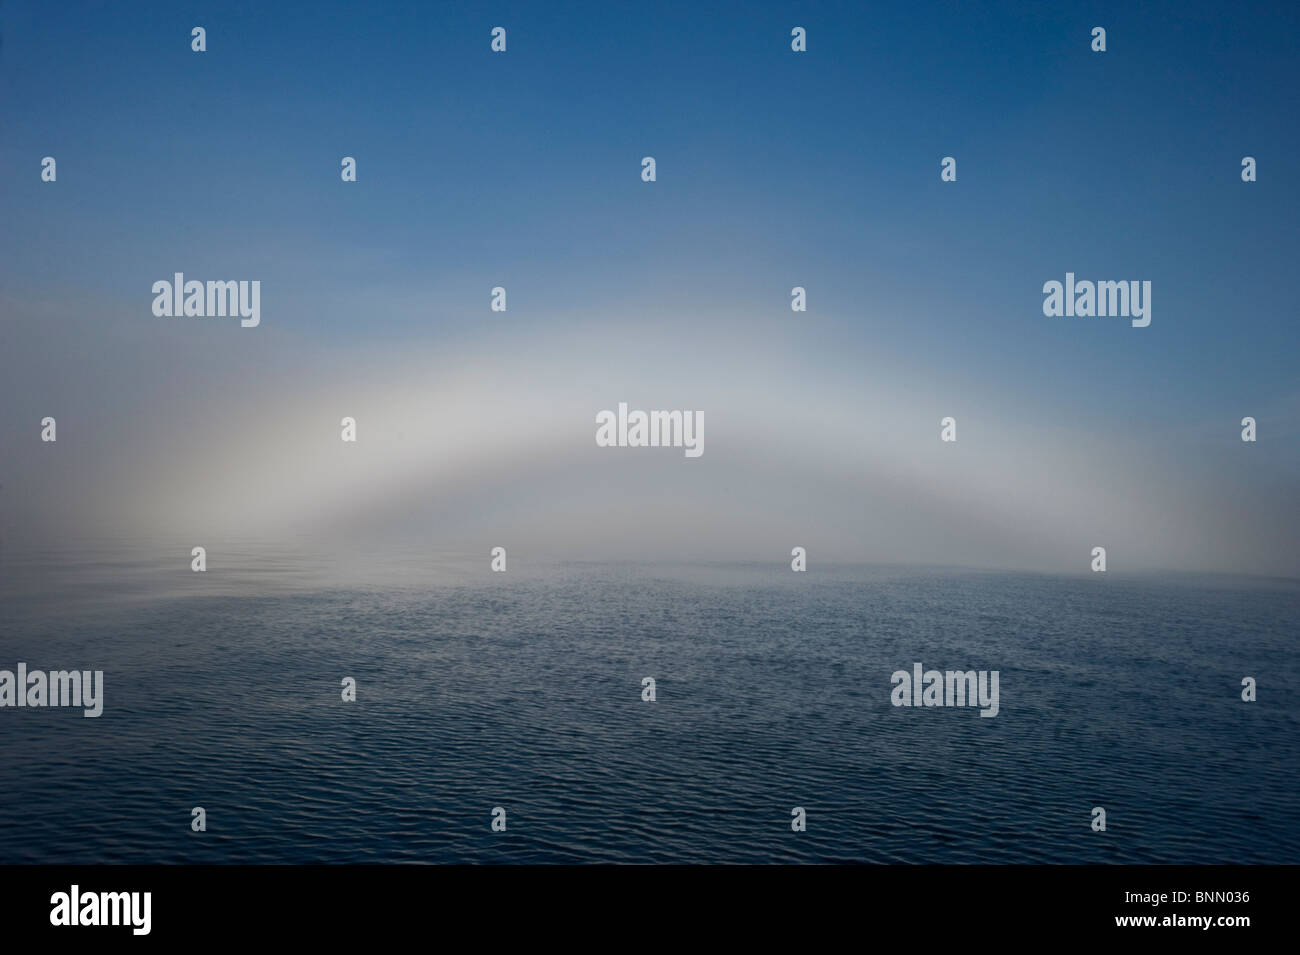 A fogbow appears over the horizon in Prince William Sound during Autumn in Alaska - Stock Image